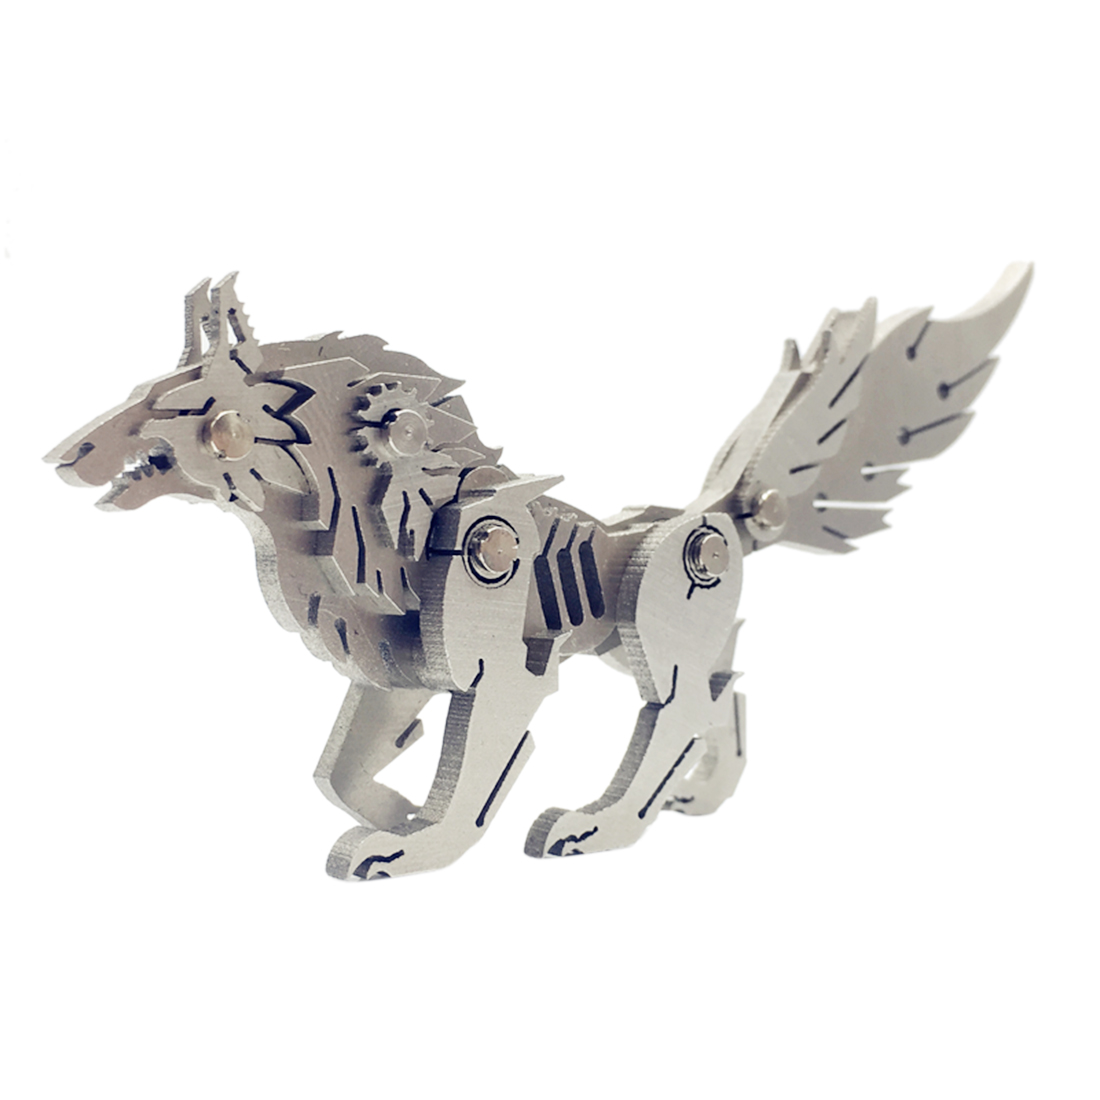 Surwish DIY Assembled Model Kit 3D Stainless Steel Assembled Detachable Wild Wolf Model Puzzle Home Office Table Ornaments Gift